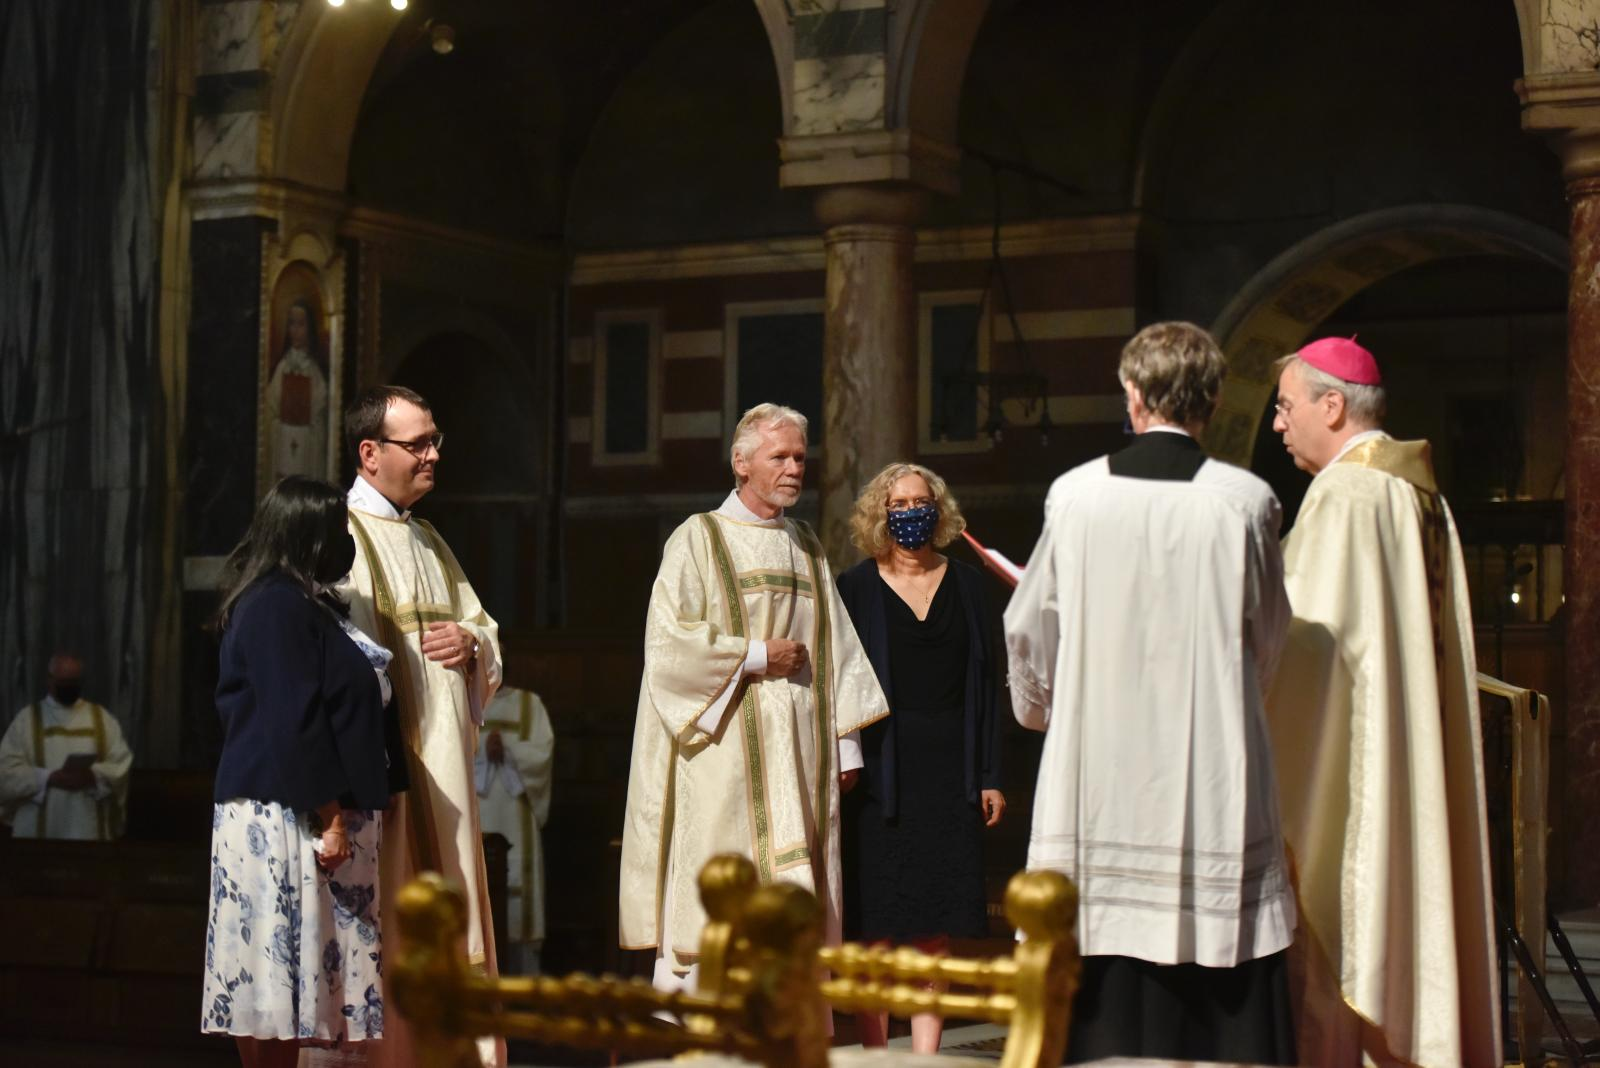 Bishop Nicholas ordains two new permanent deacons - Diocese of Westminster